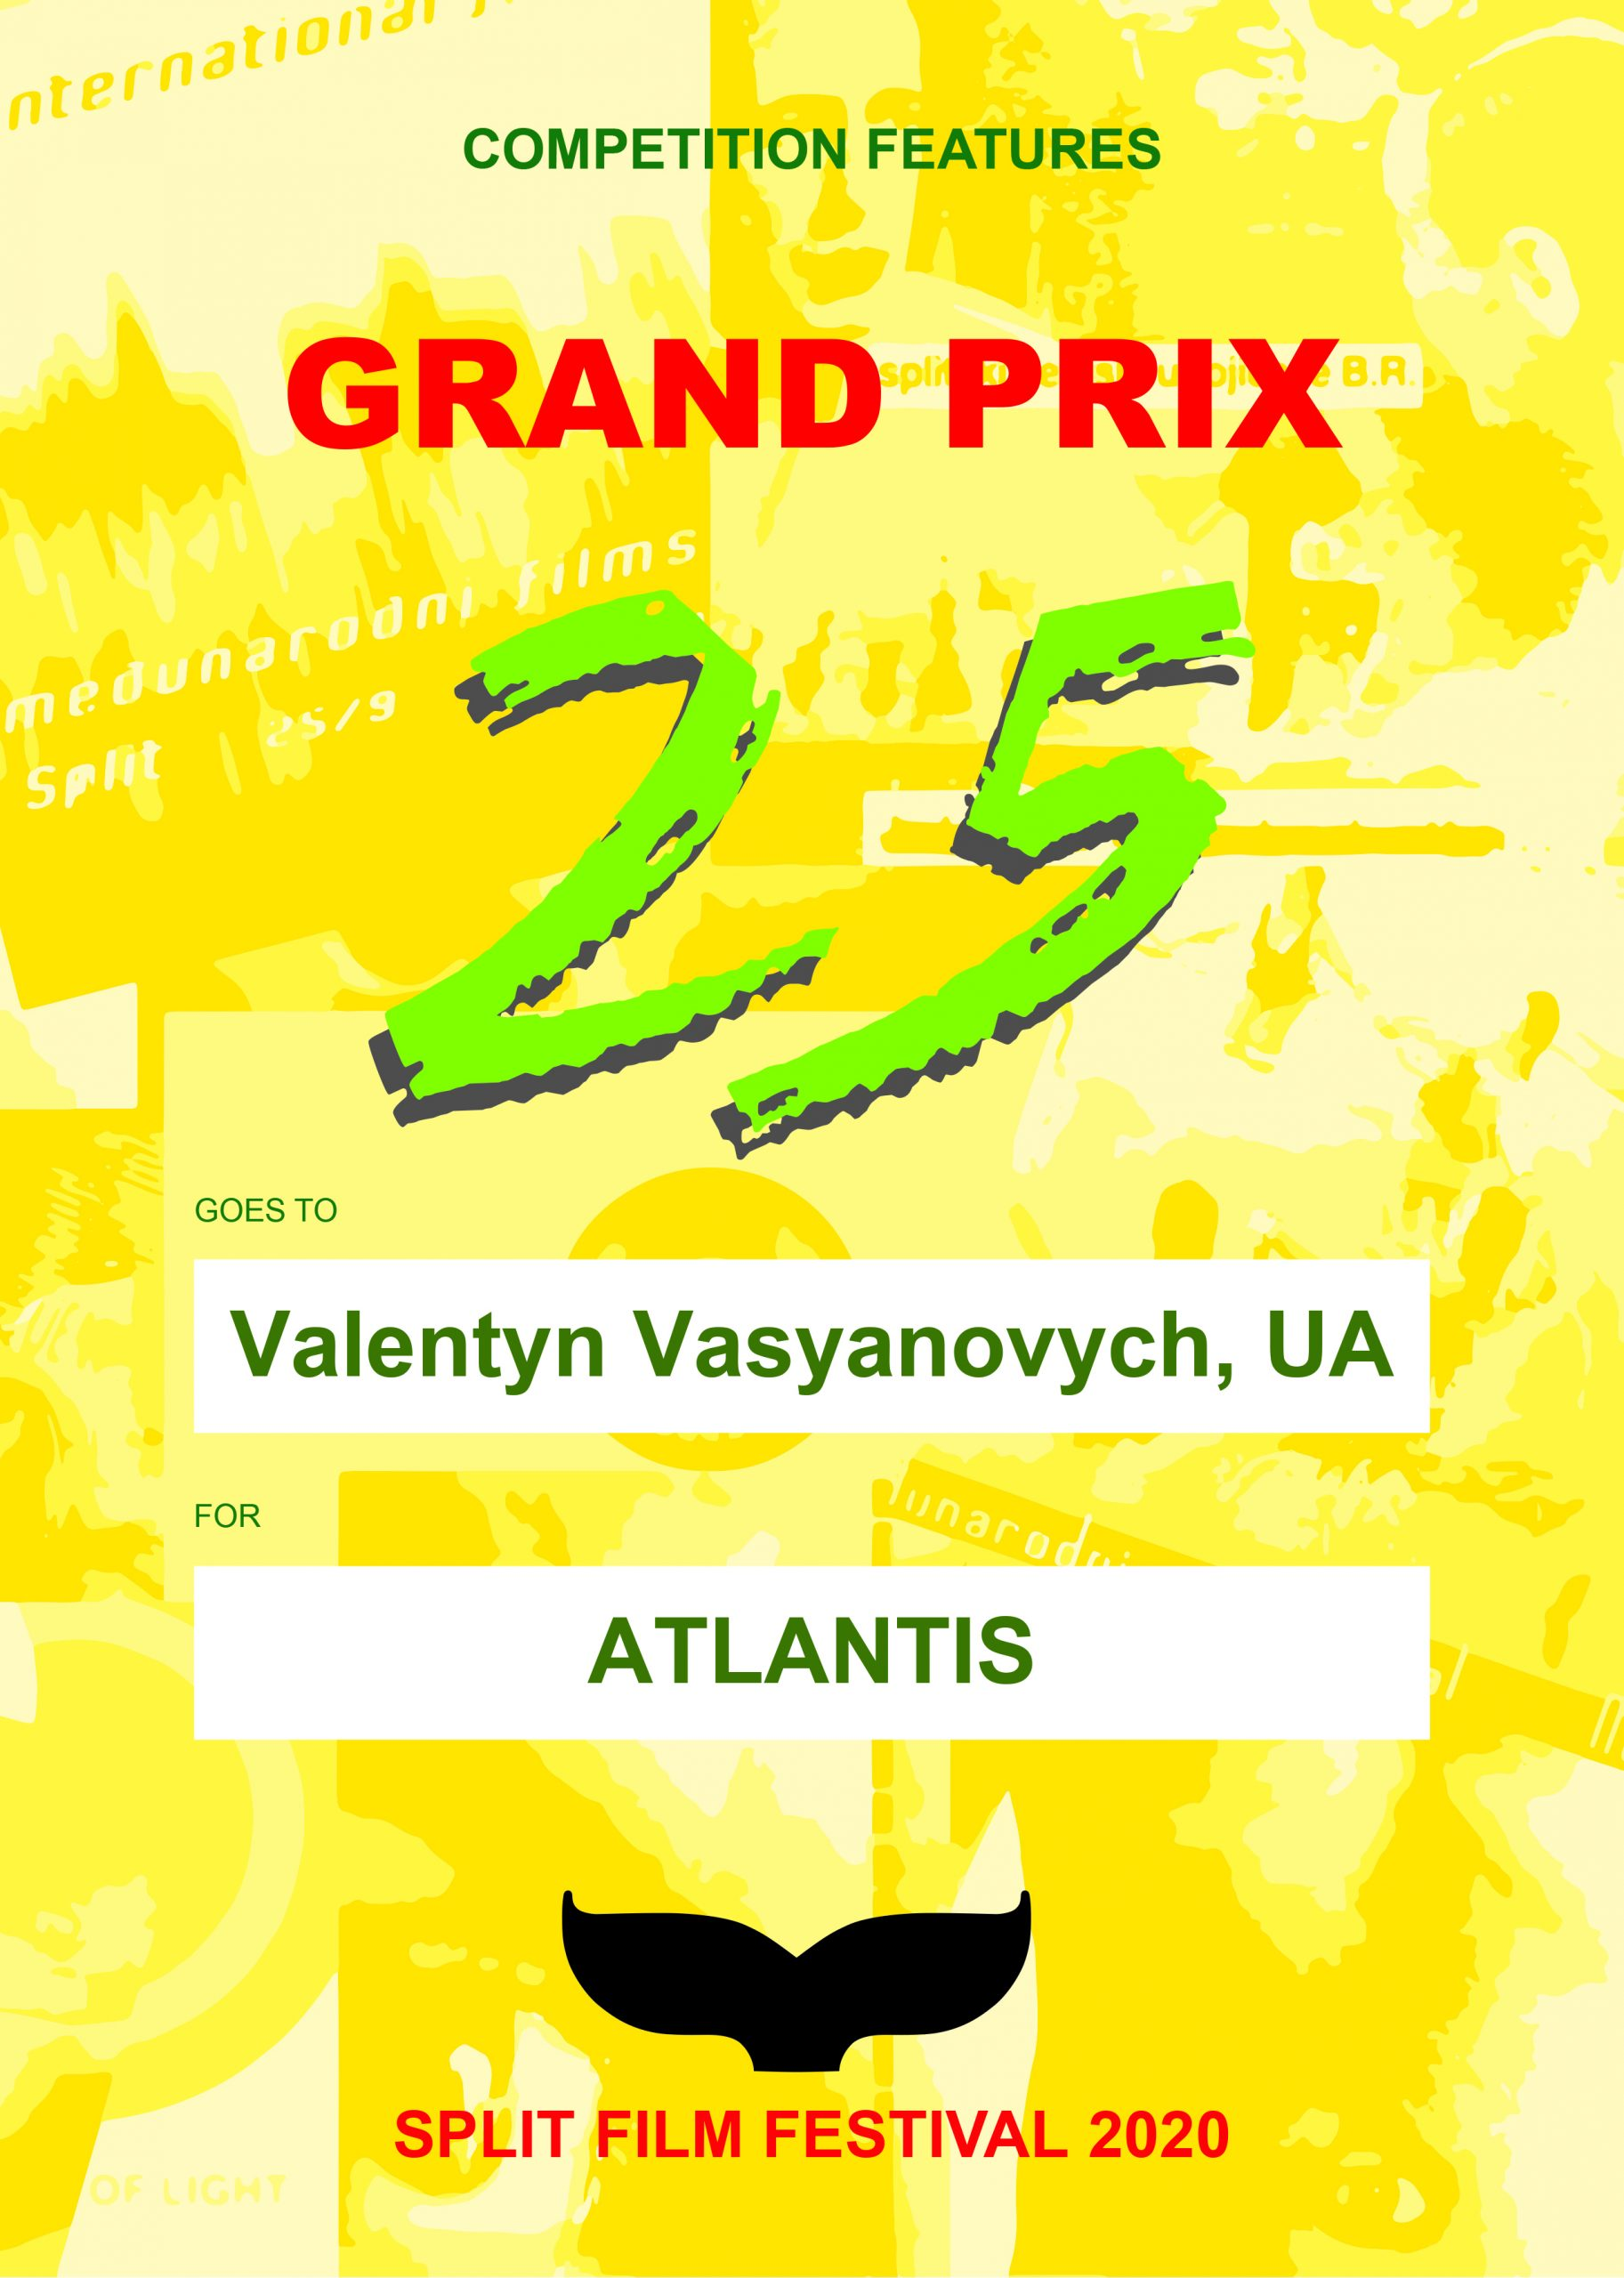 grand_prix_competition_bez_oznaka